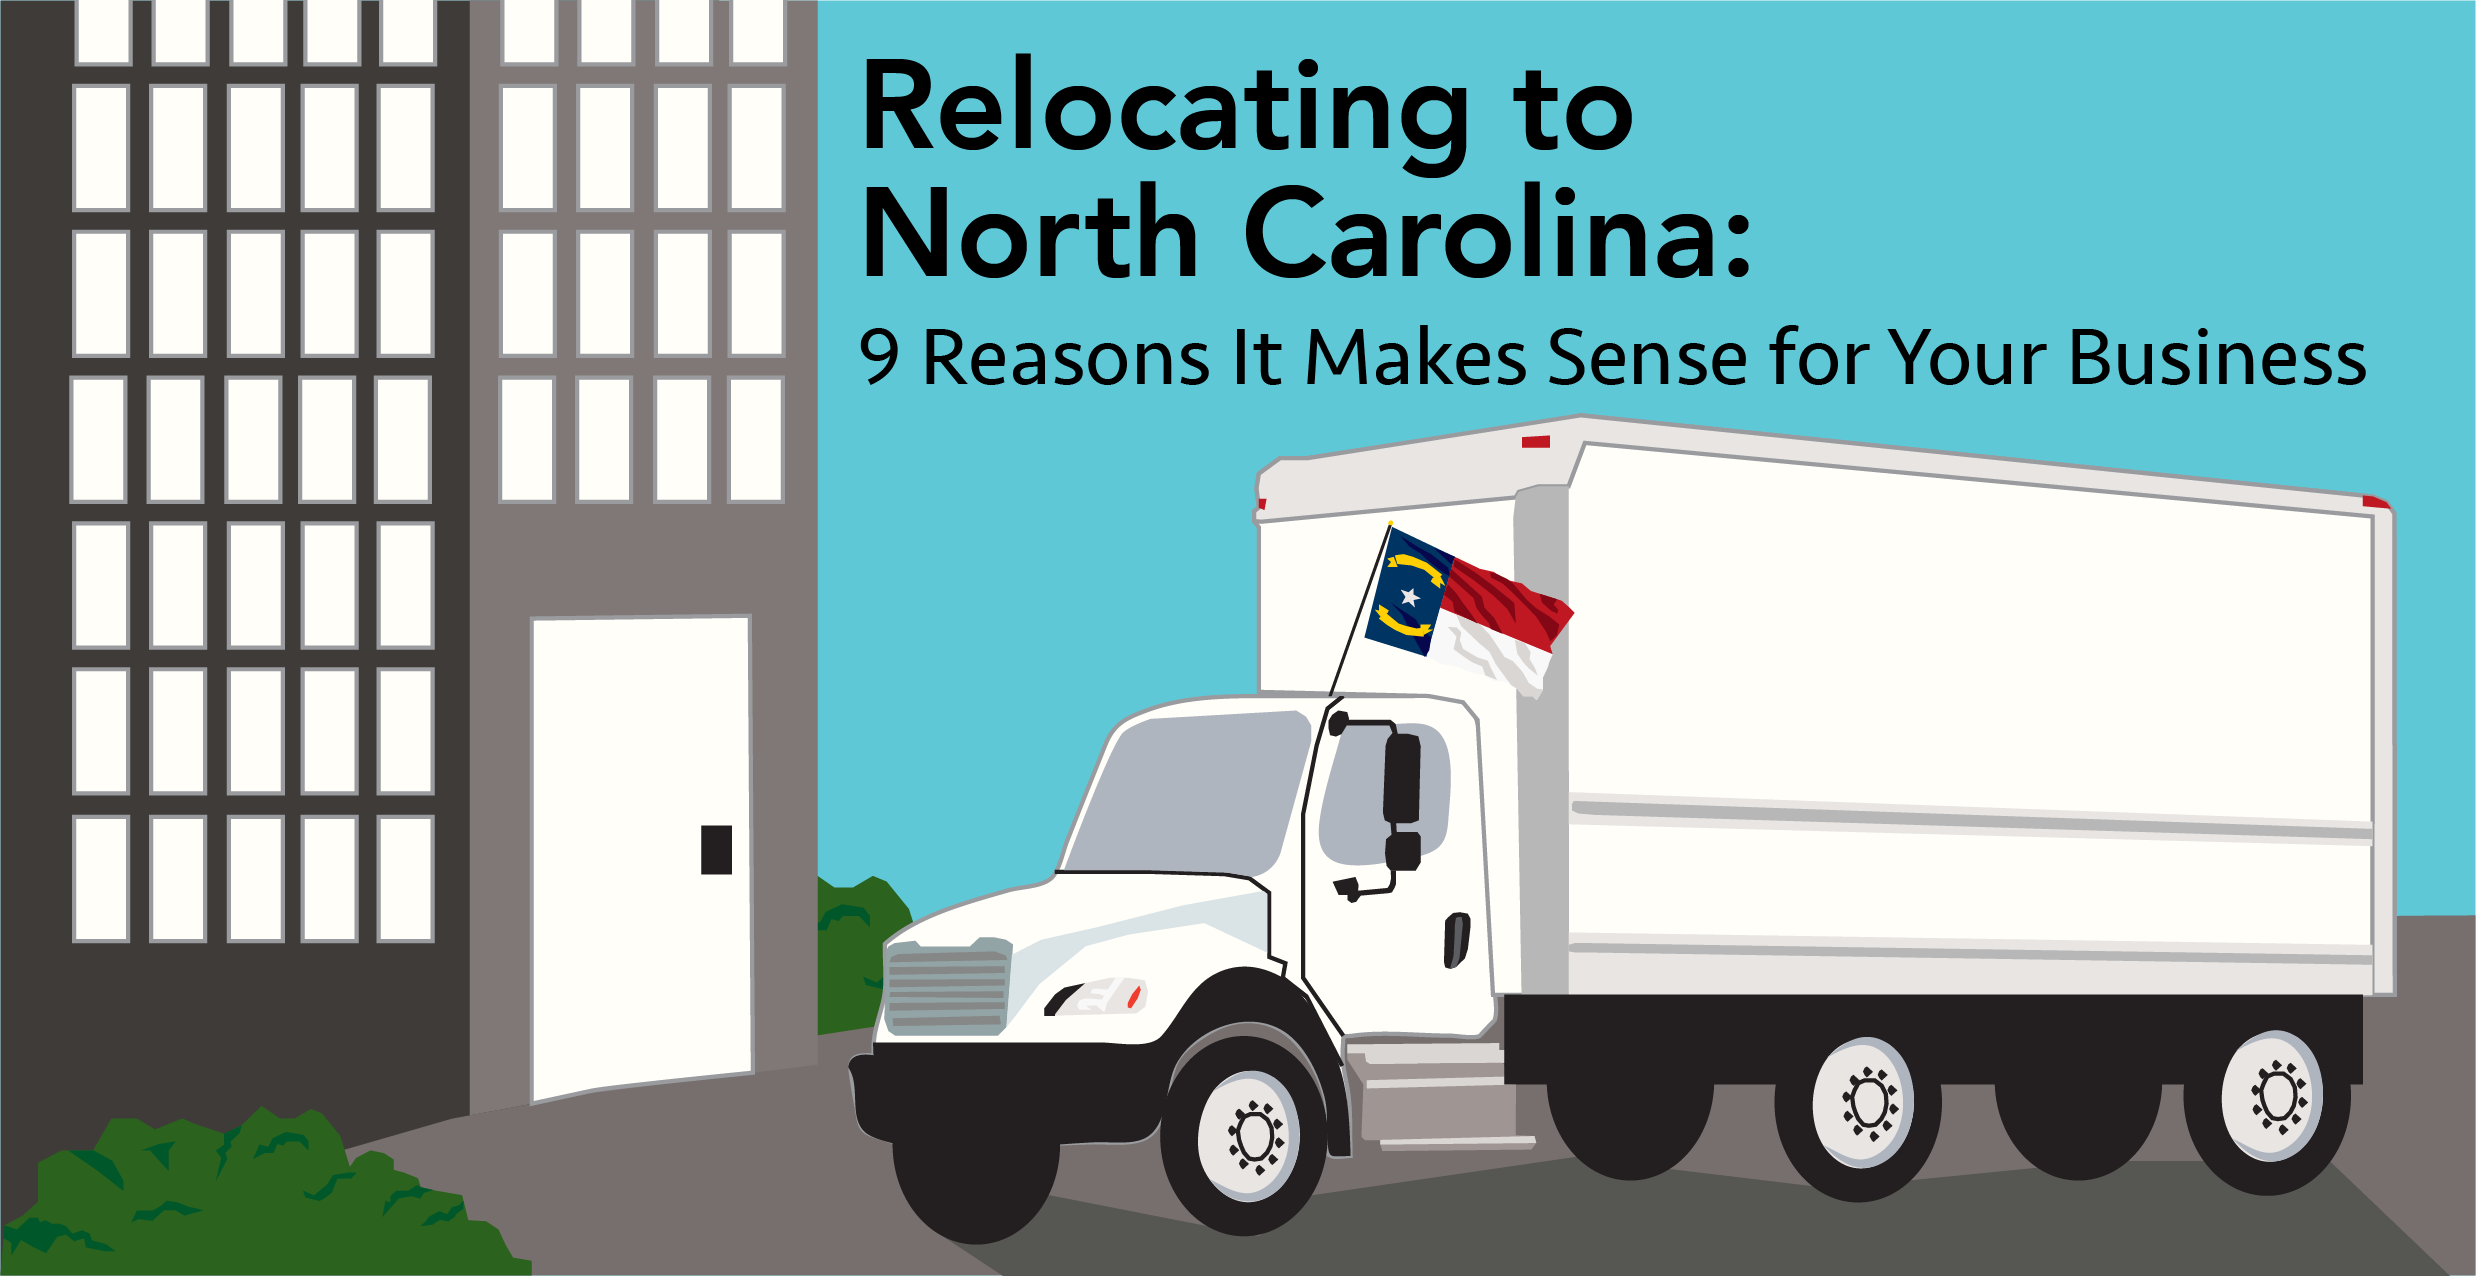 Relocating Your Business to North Carolina